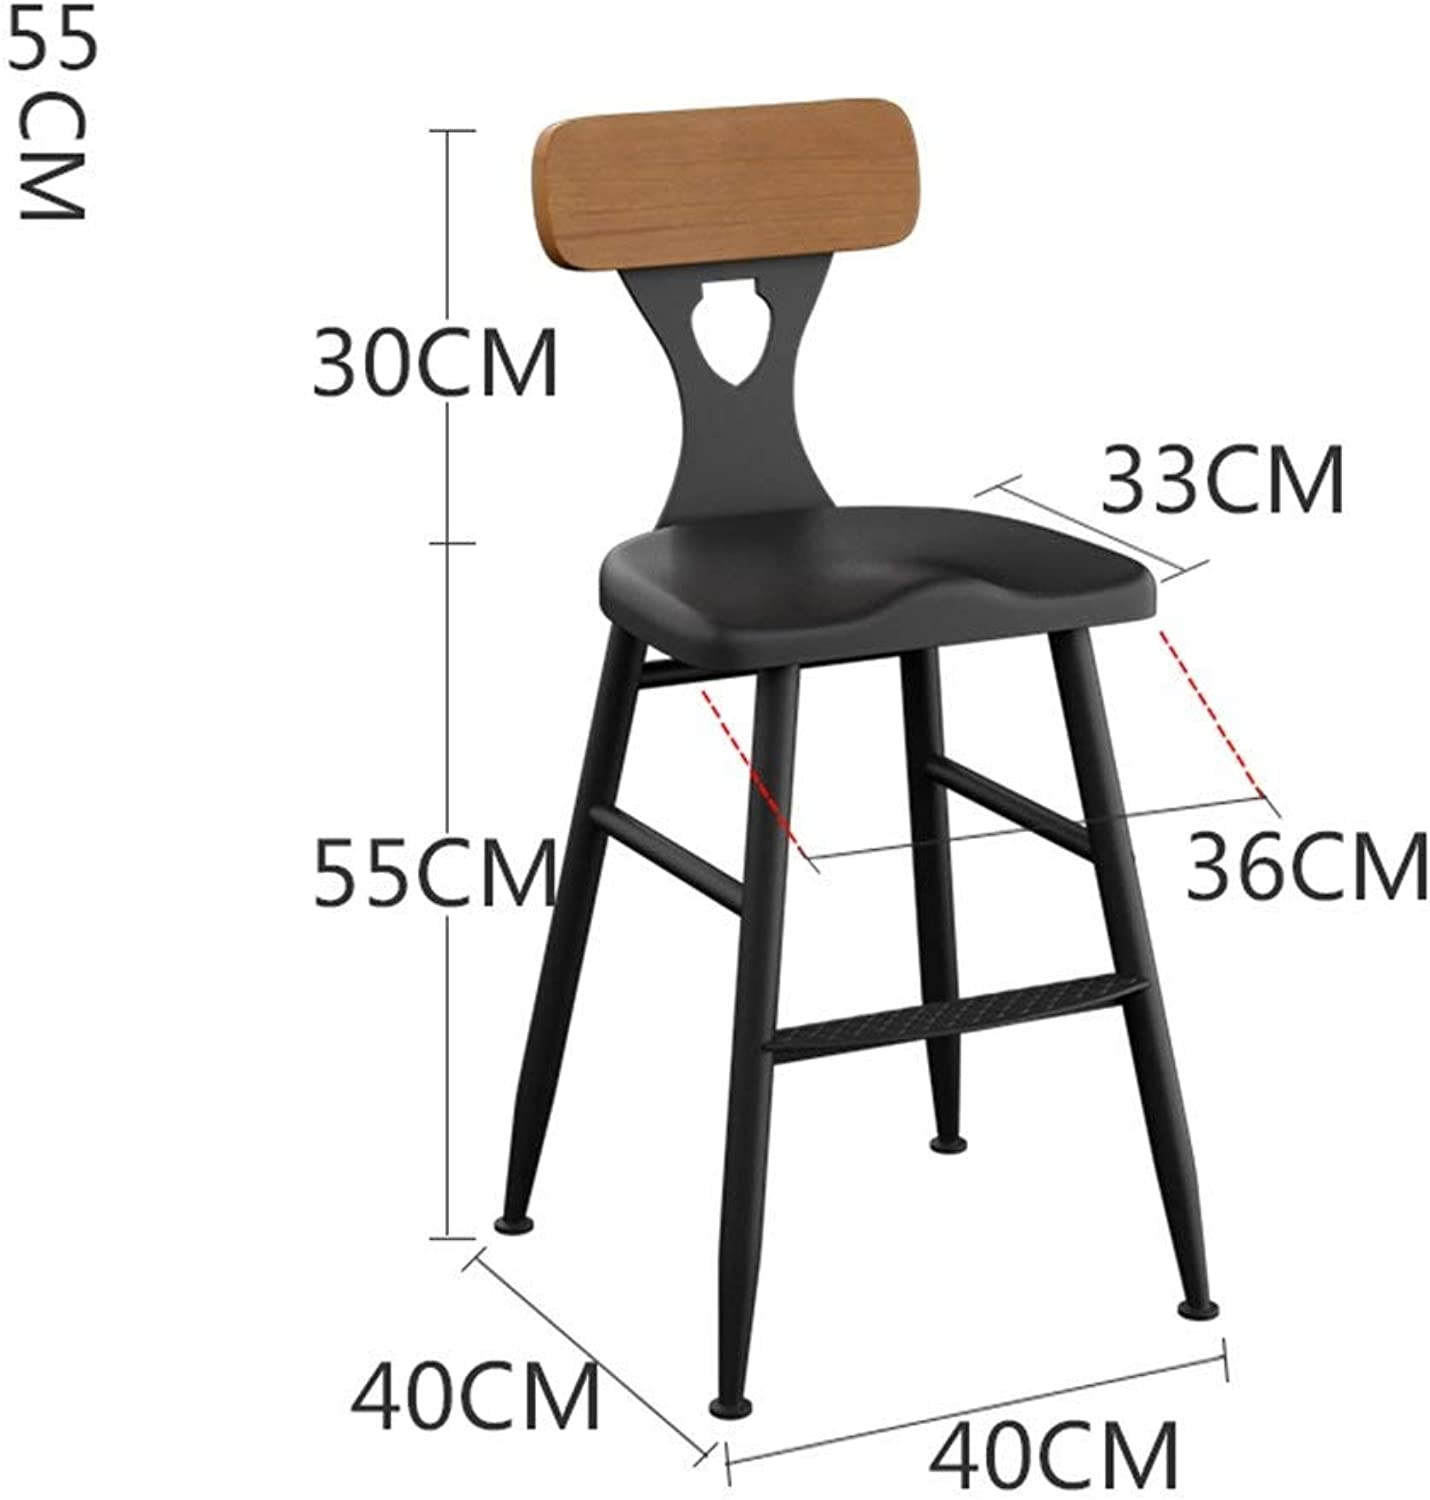 DDLD Bar Stools, Retro Industrial Style Iron Art Bar Chair Kitchen Stools Dining Chairs with Backrest Height Optional for Breakfast Bar, Counter, Kitchen and Home Barstools (color   B, Size   55CM)